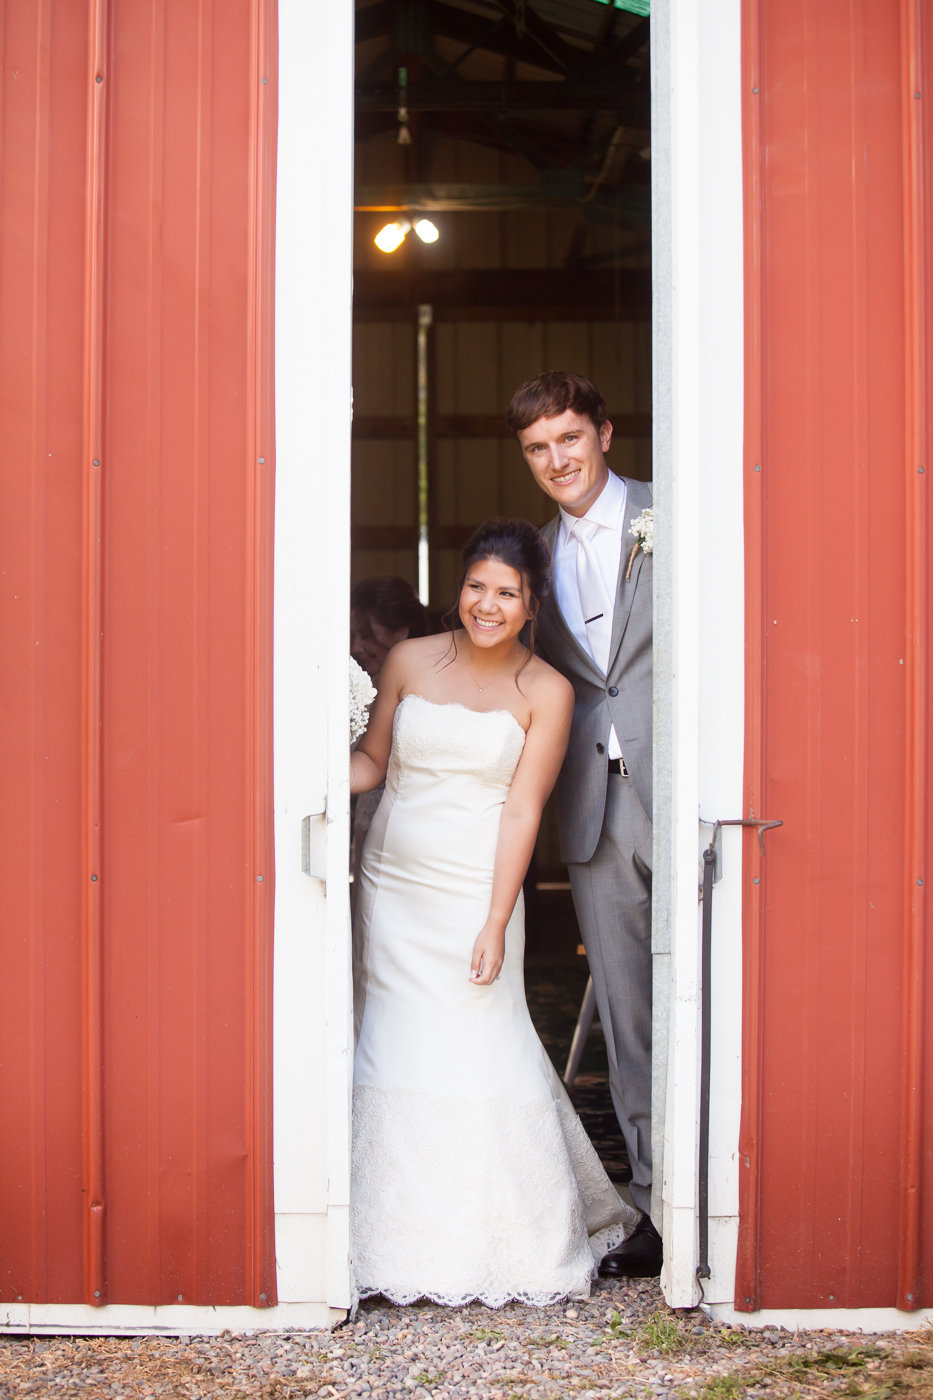 MN Bride Submission Reid and Naomi 2015-MNBride Submission Reid and Na-0052.jpg